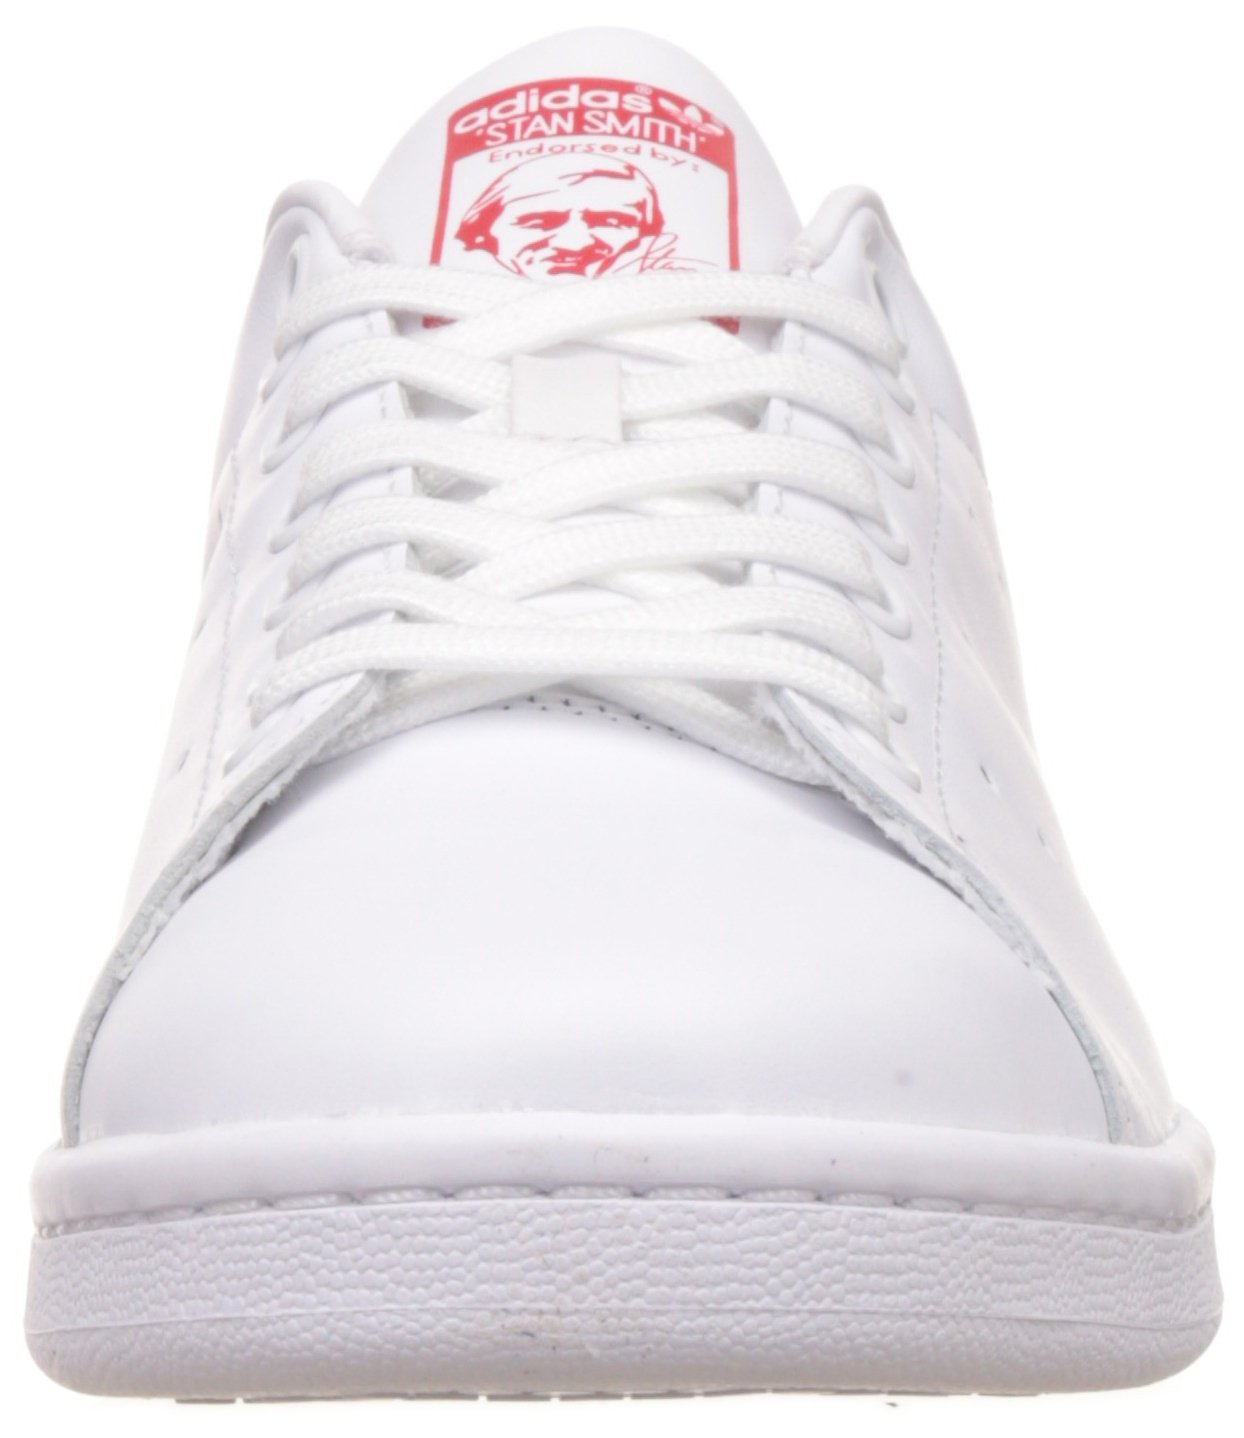 adidas White Originals Stan Red) Smith, Sneakers Unisex – Adulto Bianco – (Running White Ftw/Running White Ftw/Collegiate Red) 14ecb33